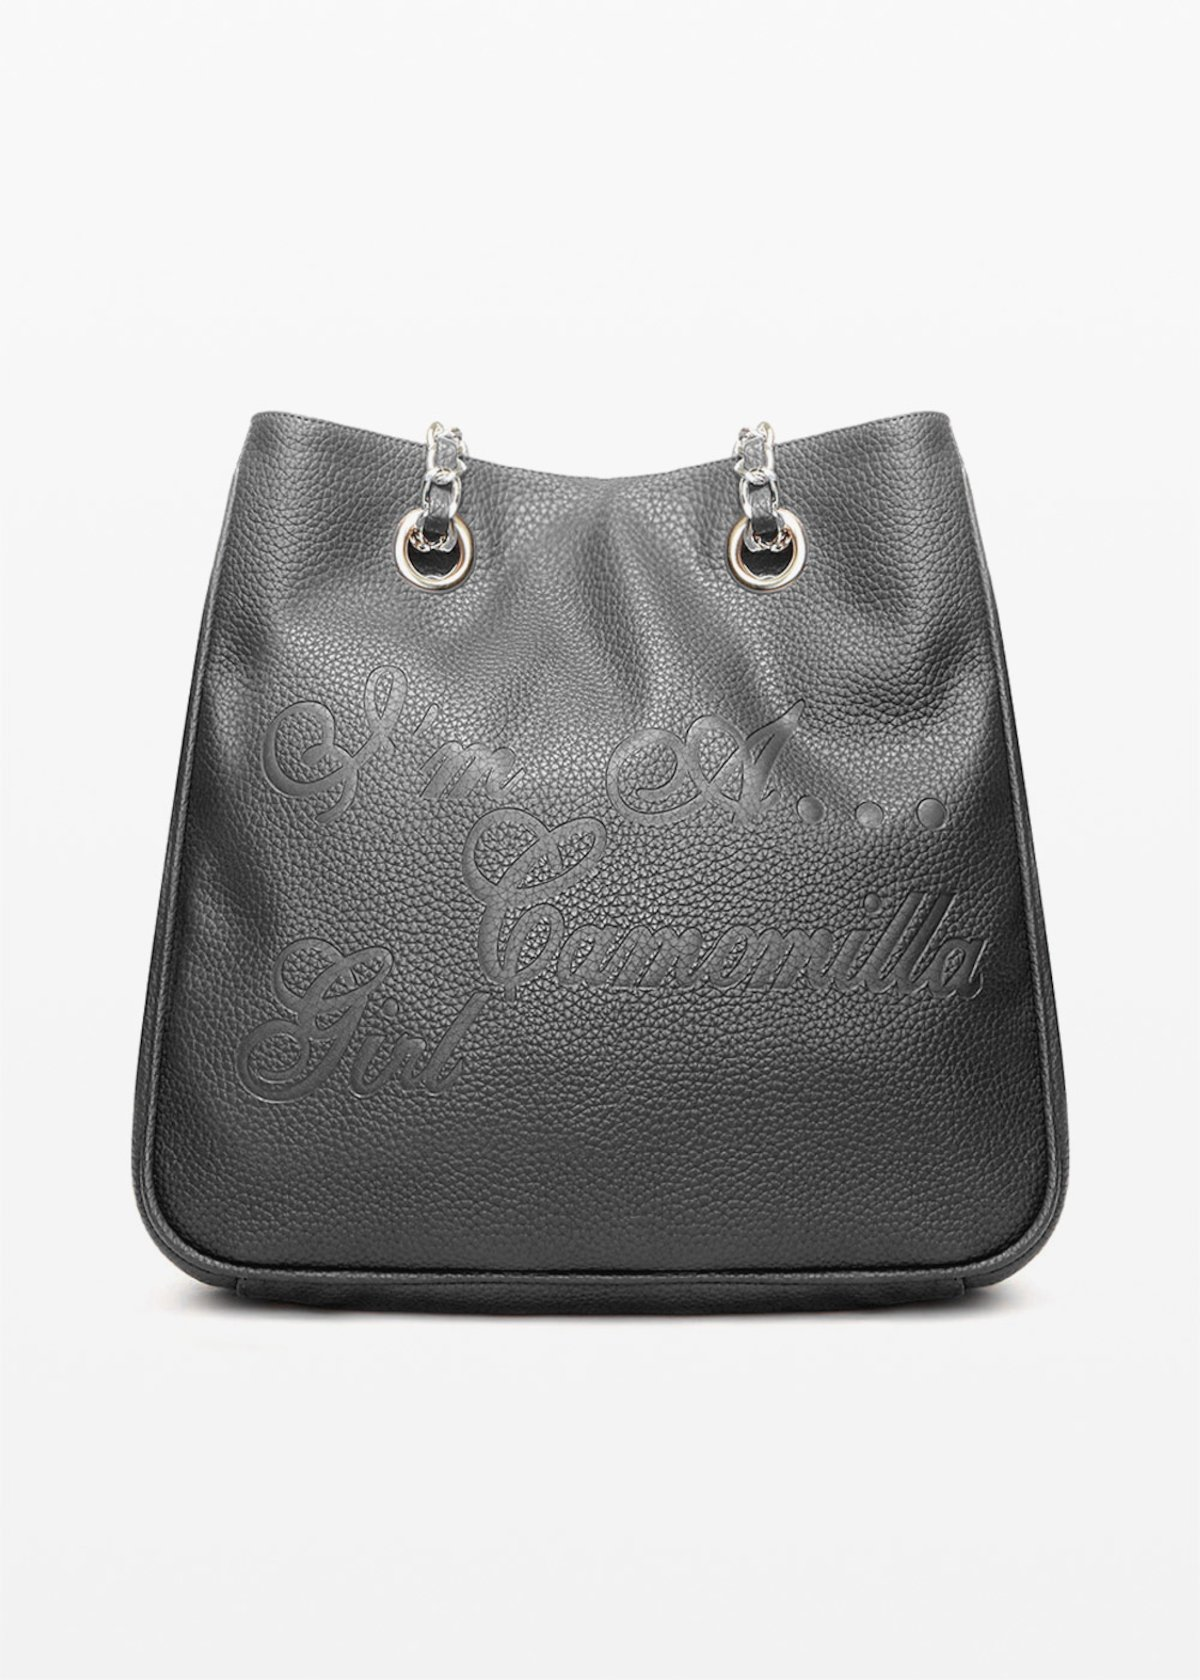 Shopping bag Minicamog in ecopelle con logo embossed - Black - Donna - Immagine categoria